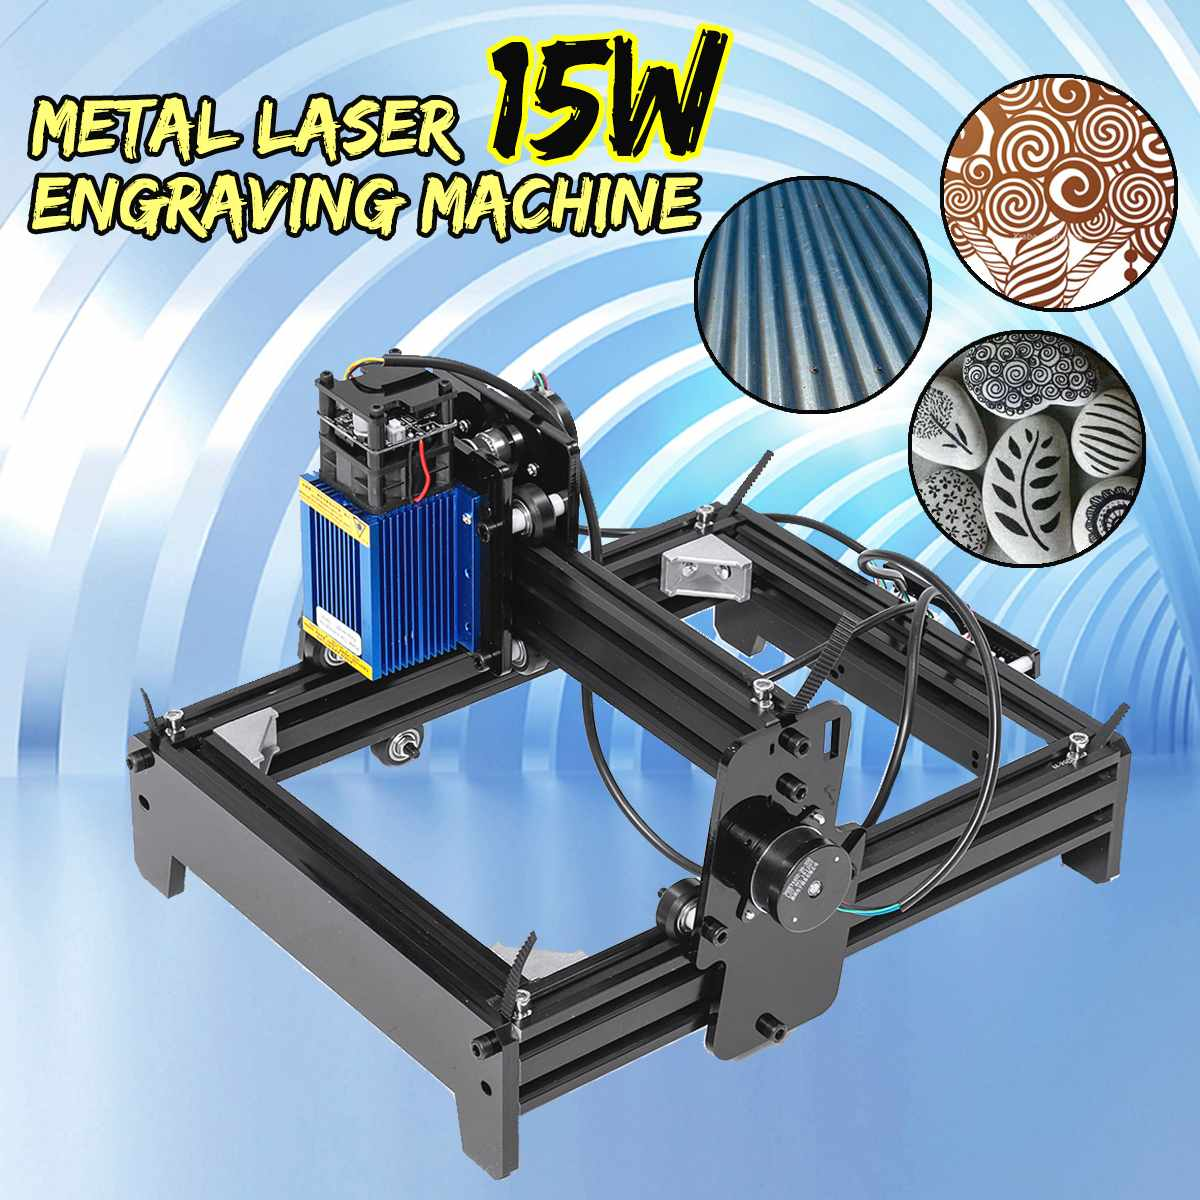 10W/12W/15W 15000mW High Precision Laser Engraving Machine Metal Wood Marking Engraving Home DIY Logo Printer Cutter Wood Router|Wood Routers| |  - title=